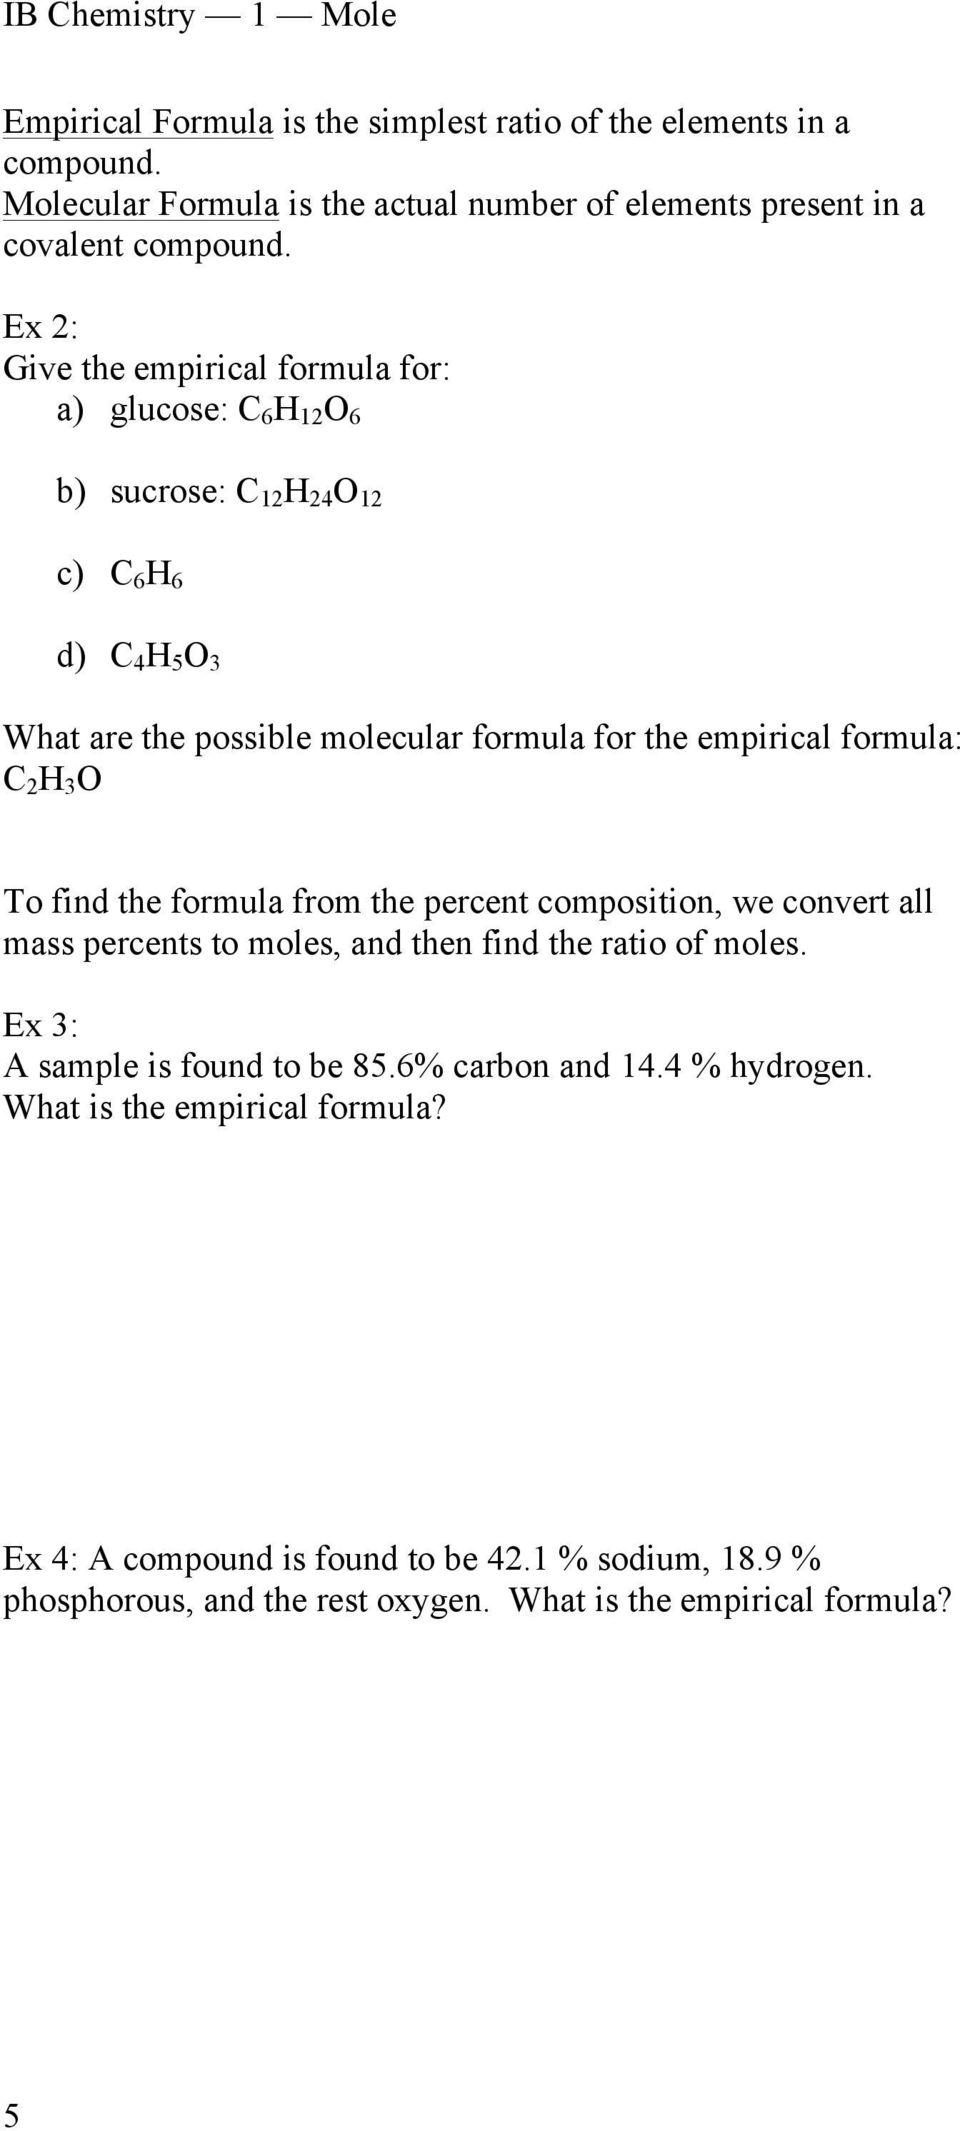 empirical formula: C 2 H 3 O To find the formula from the percent composition, we convert all mass percents to moles, and then find the ratio of moles.